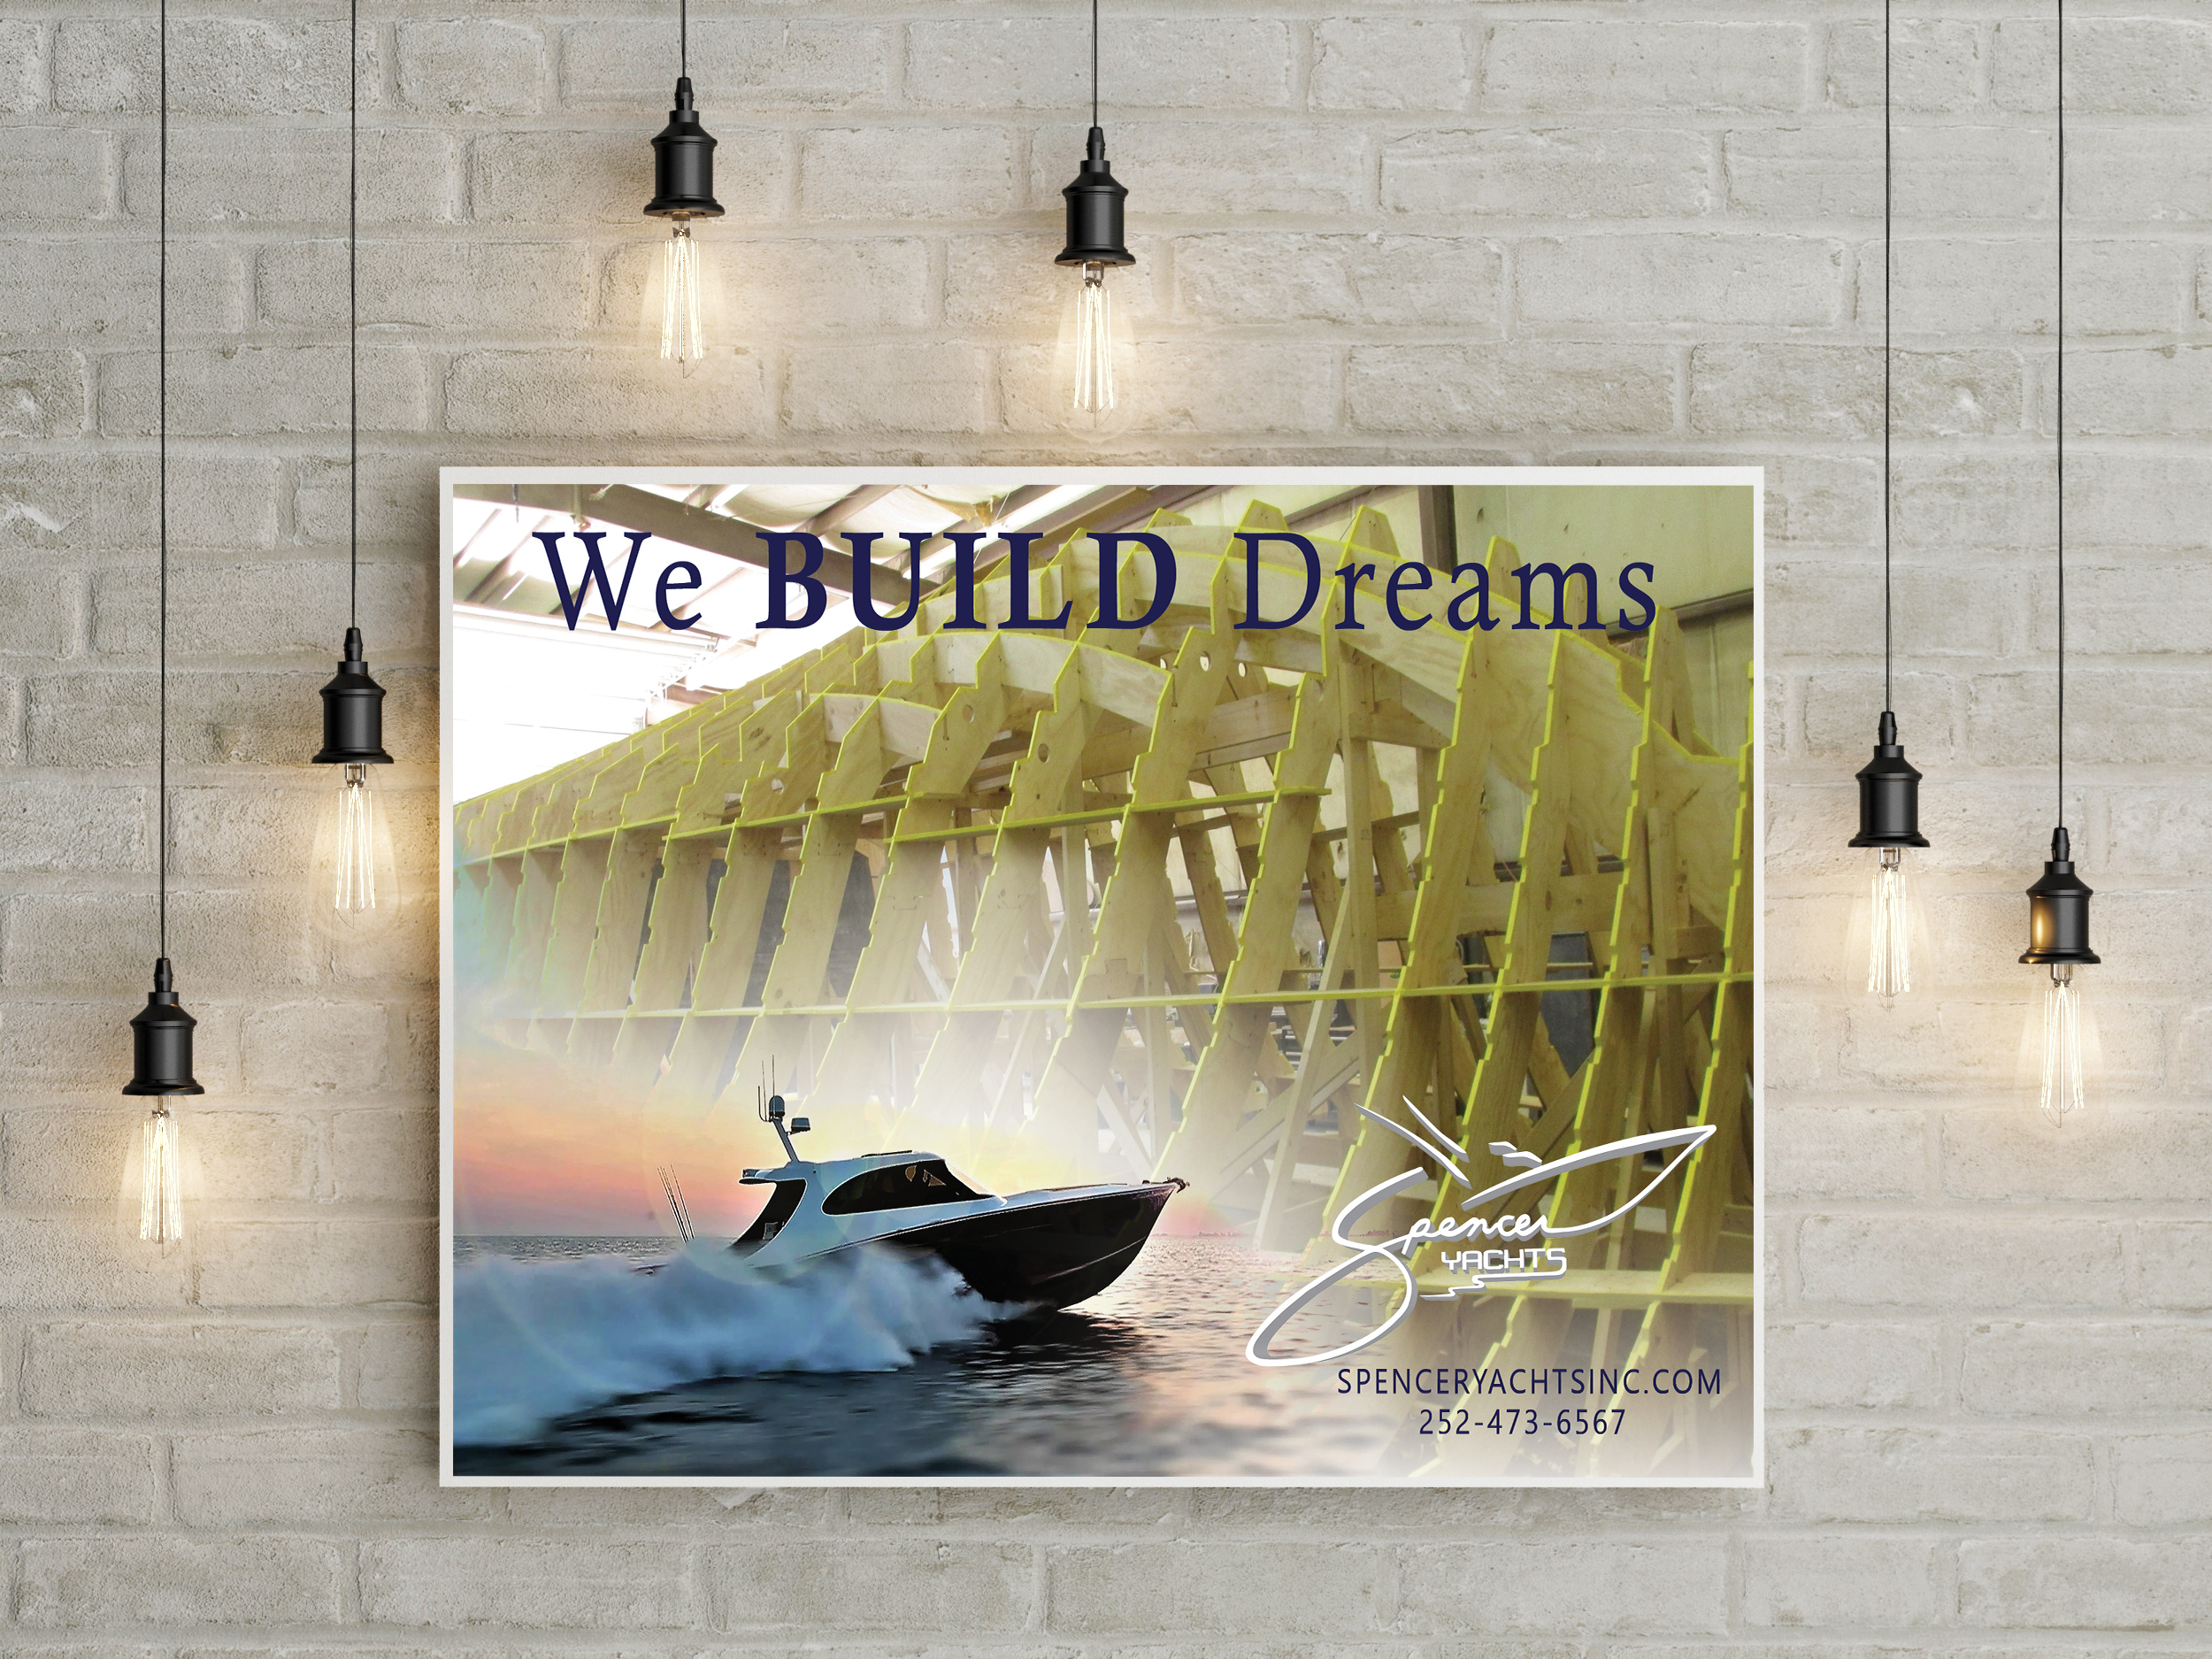 Dare County Boat Builders Print Advertising Campaign for Spencer Yachts